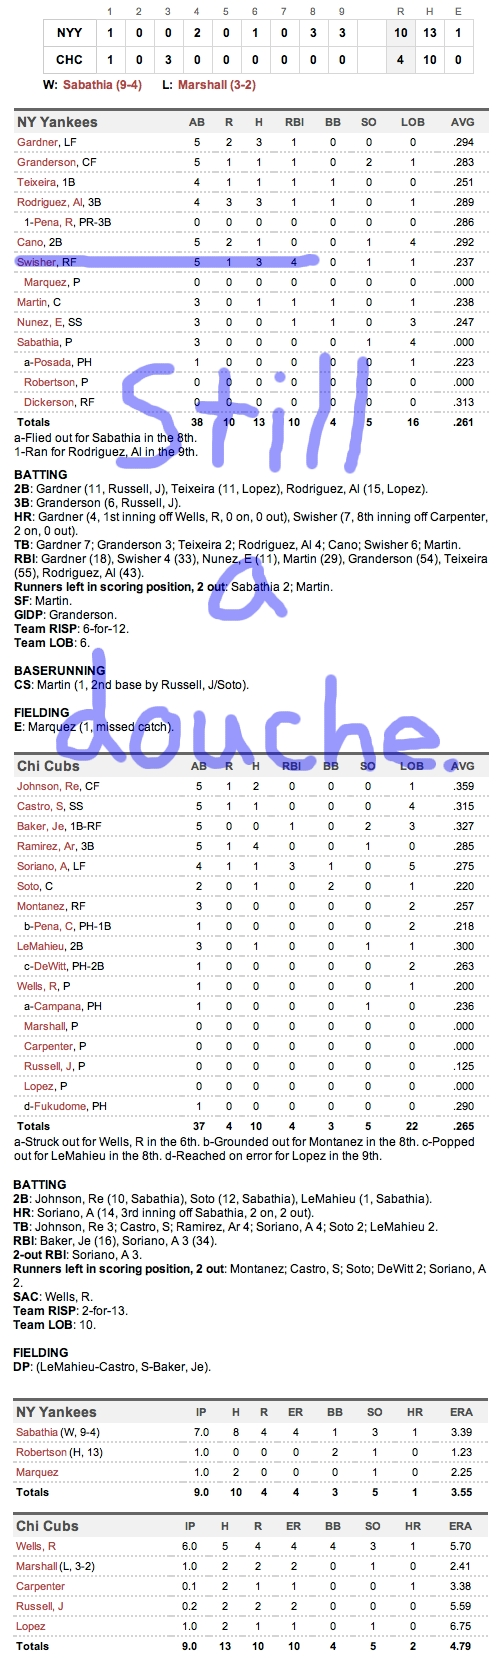 Enhanced Box Score: Yankees 10, Cubs 4 – June 19, 2011